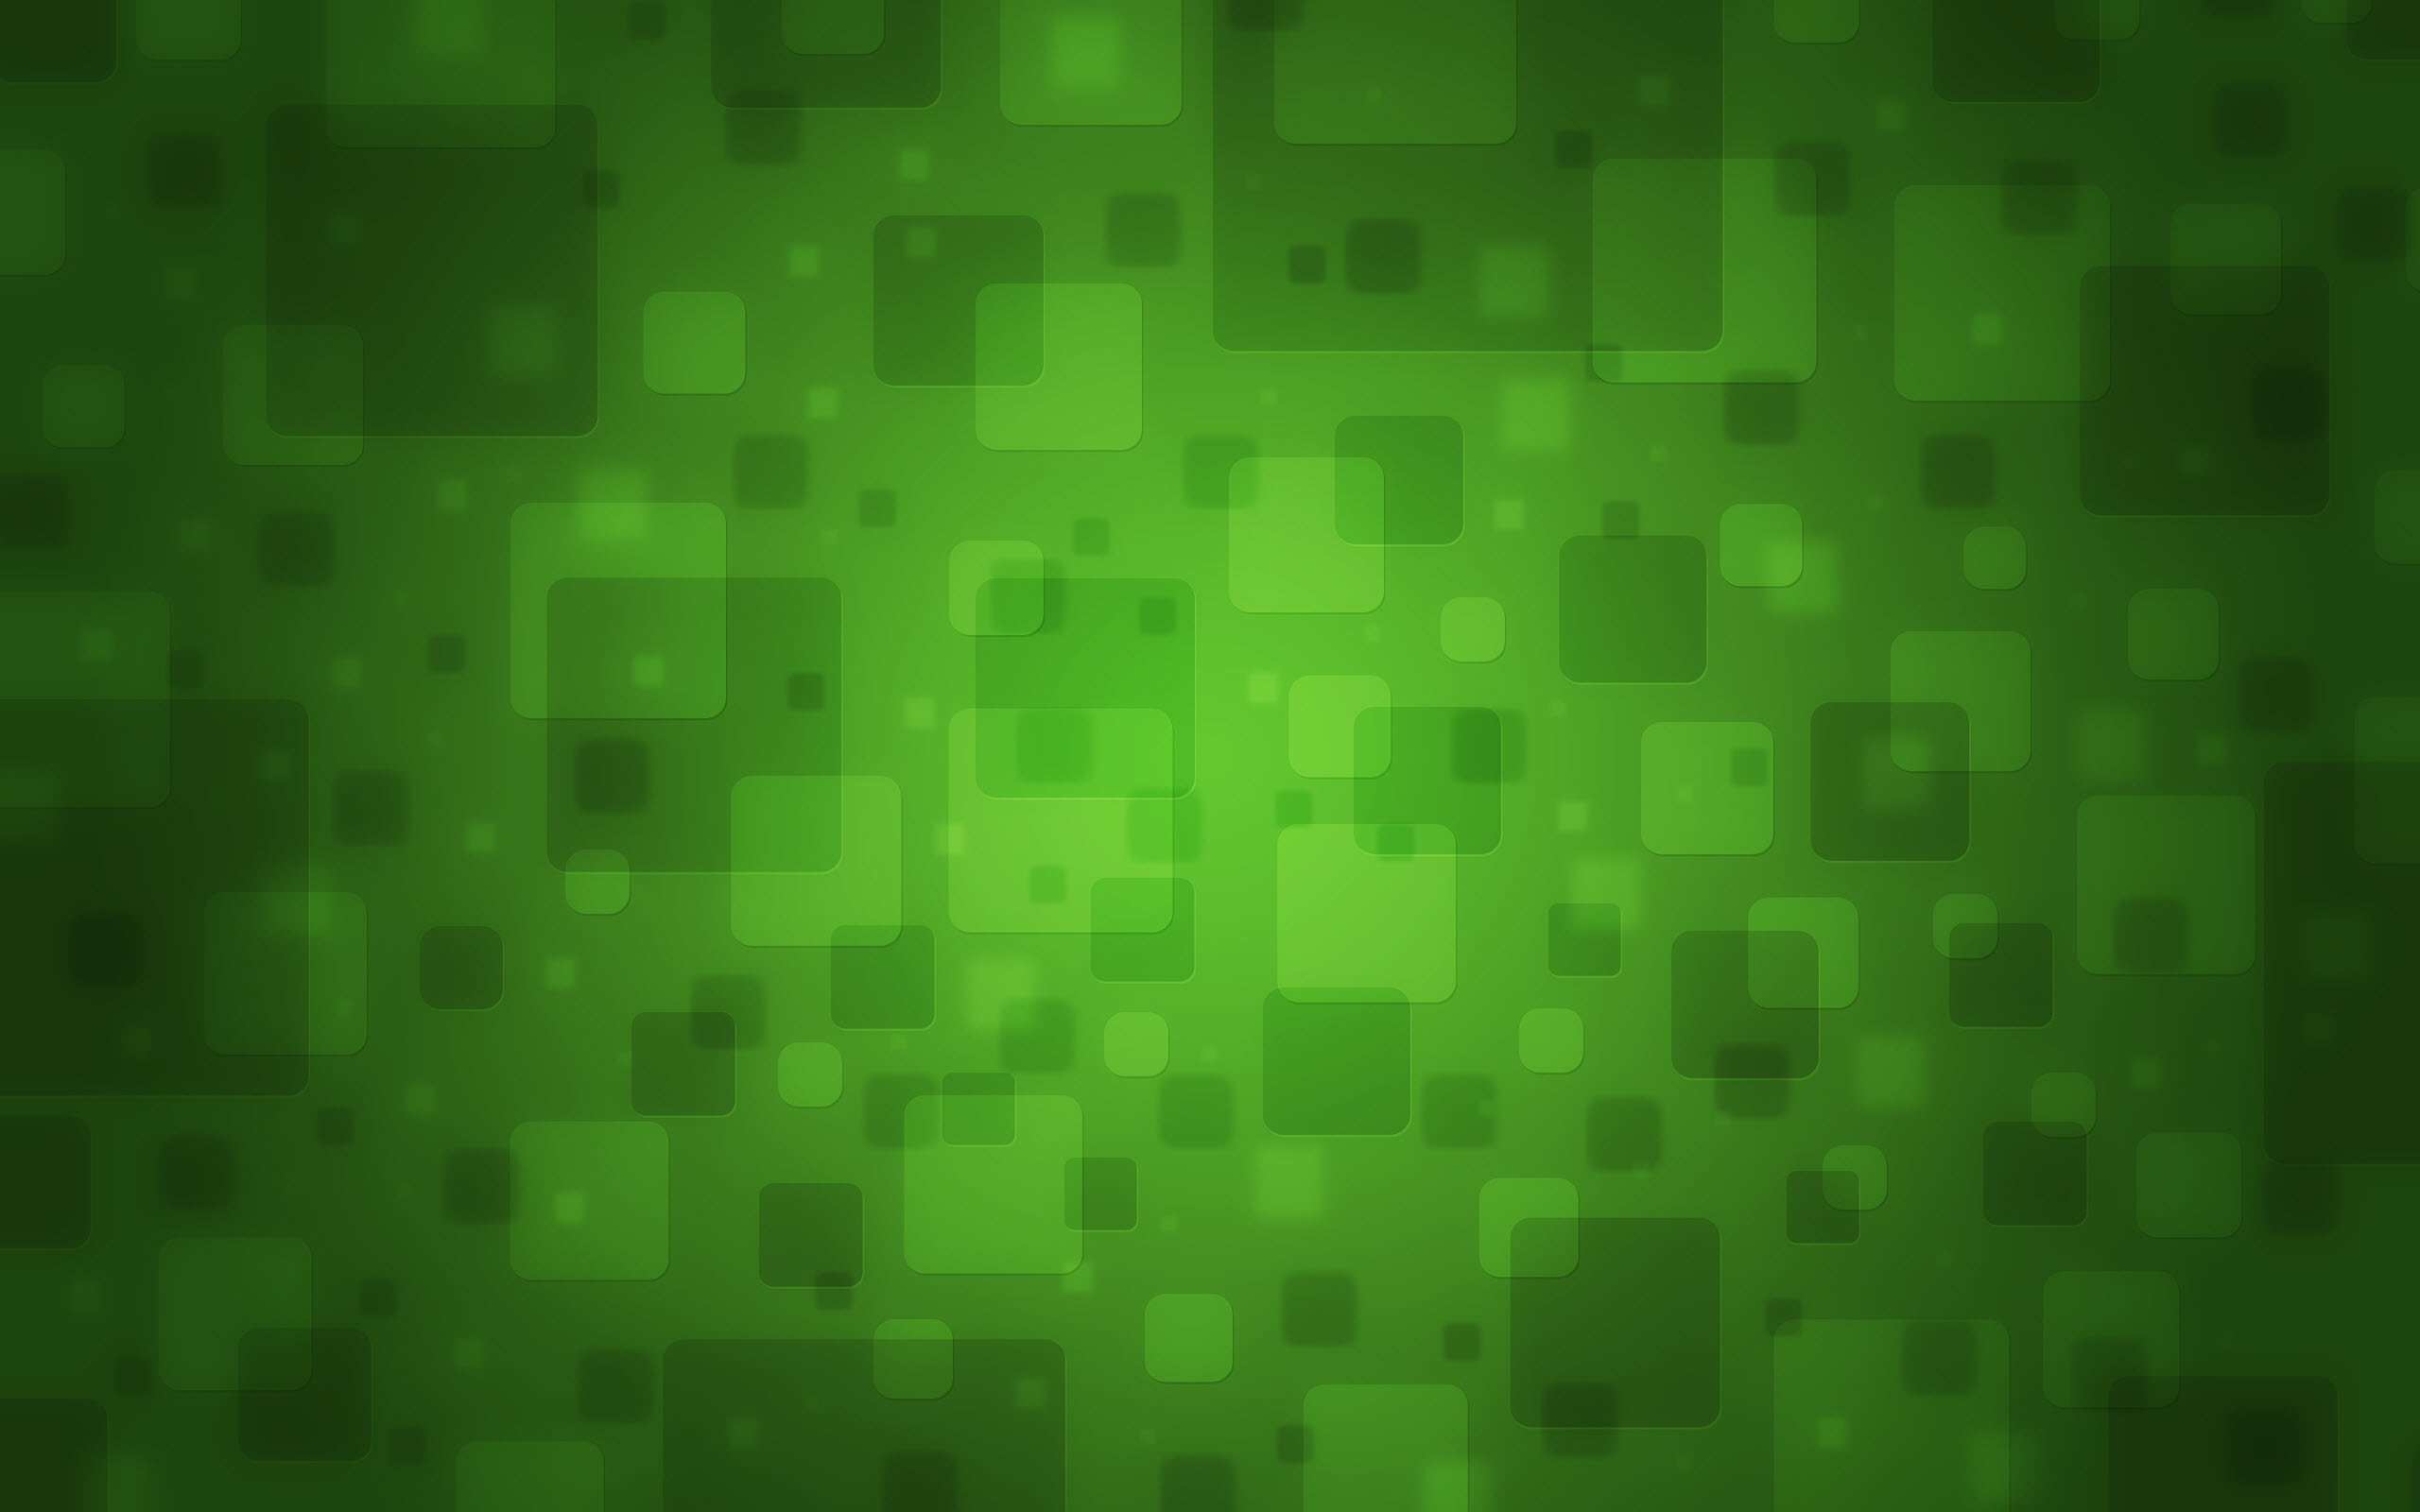 Download Abstract Green Wallpaper 2560x1600 Full HD Wallpapers 2560x1600